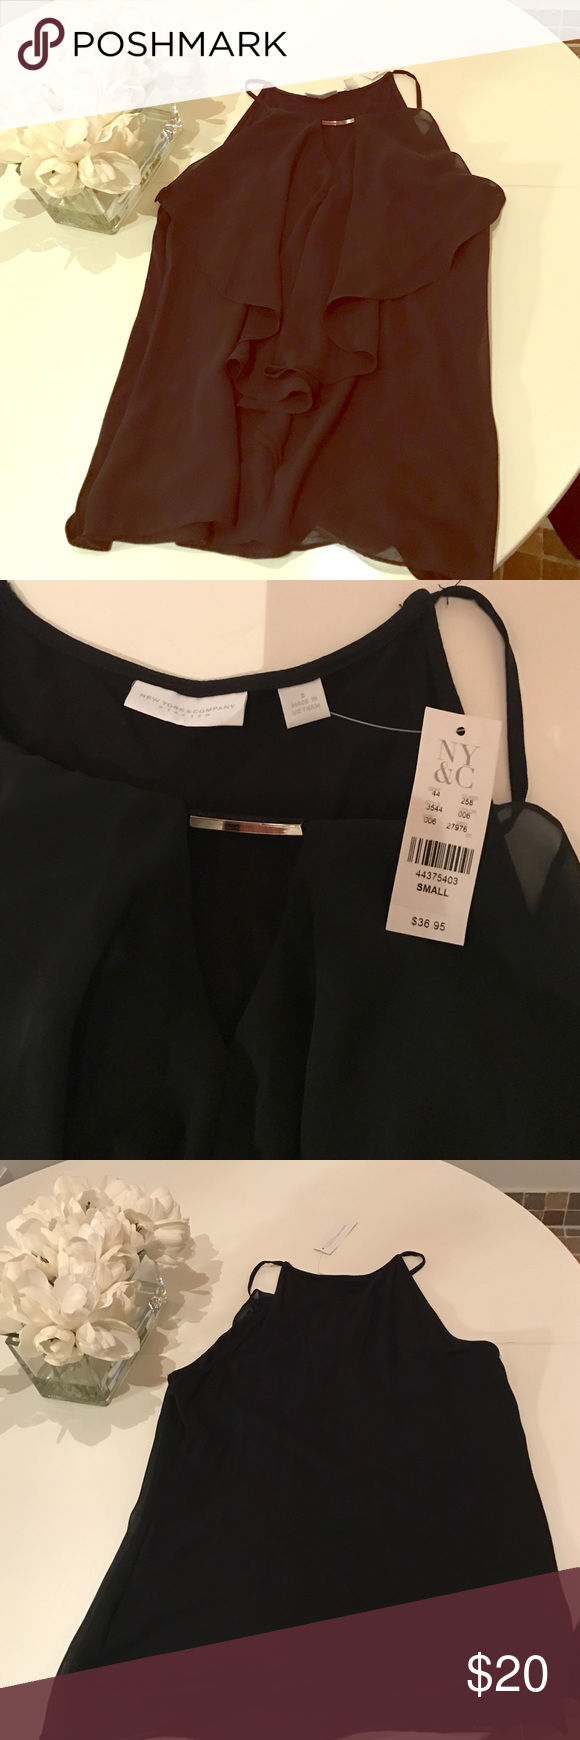 New romantic black top Ny&c romantic black top..running for summer and for winter time with a jacket..size S with gold jewel detail. Retail $36 sealing for cheaper or best offer ny&c Tops